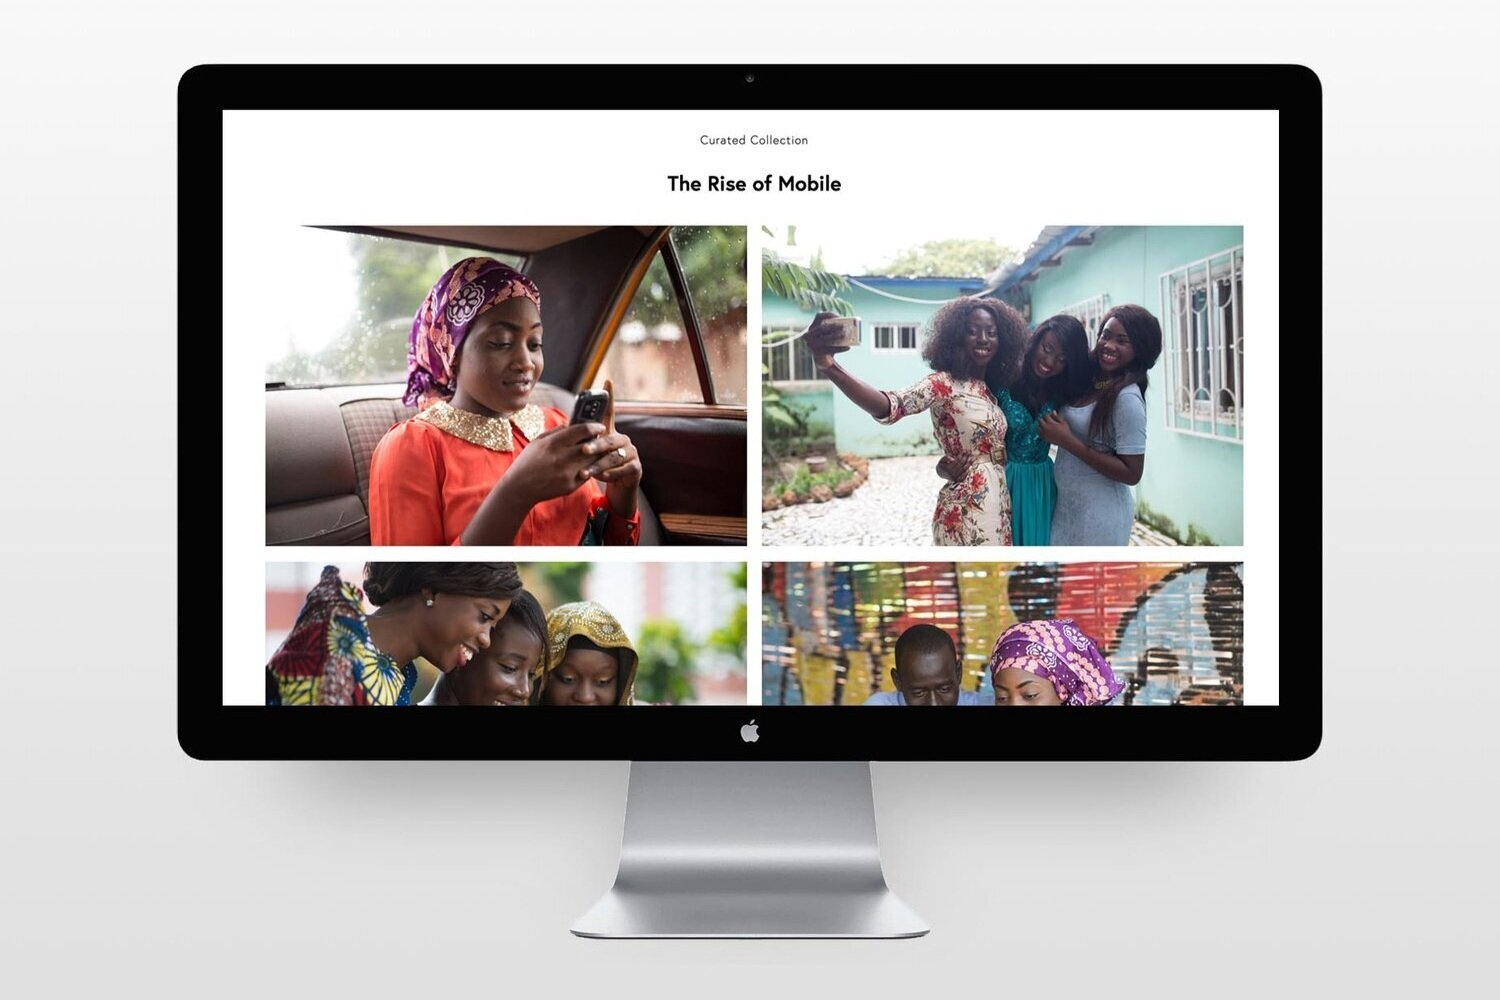 Africa ReframedOnline Marketplace for African Visual Content.Created by an ambitious community to make a difference.Launching soon - Get involved now. -